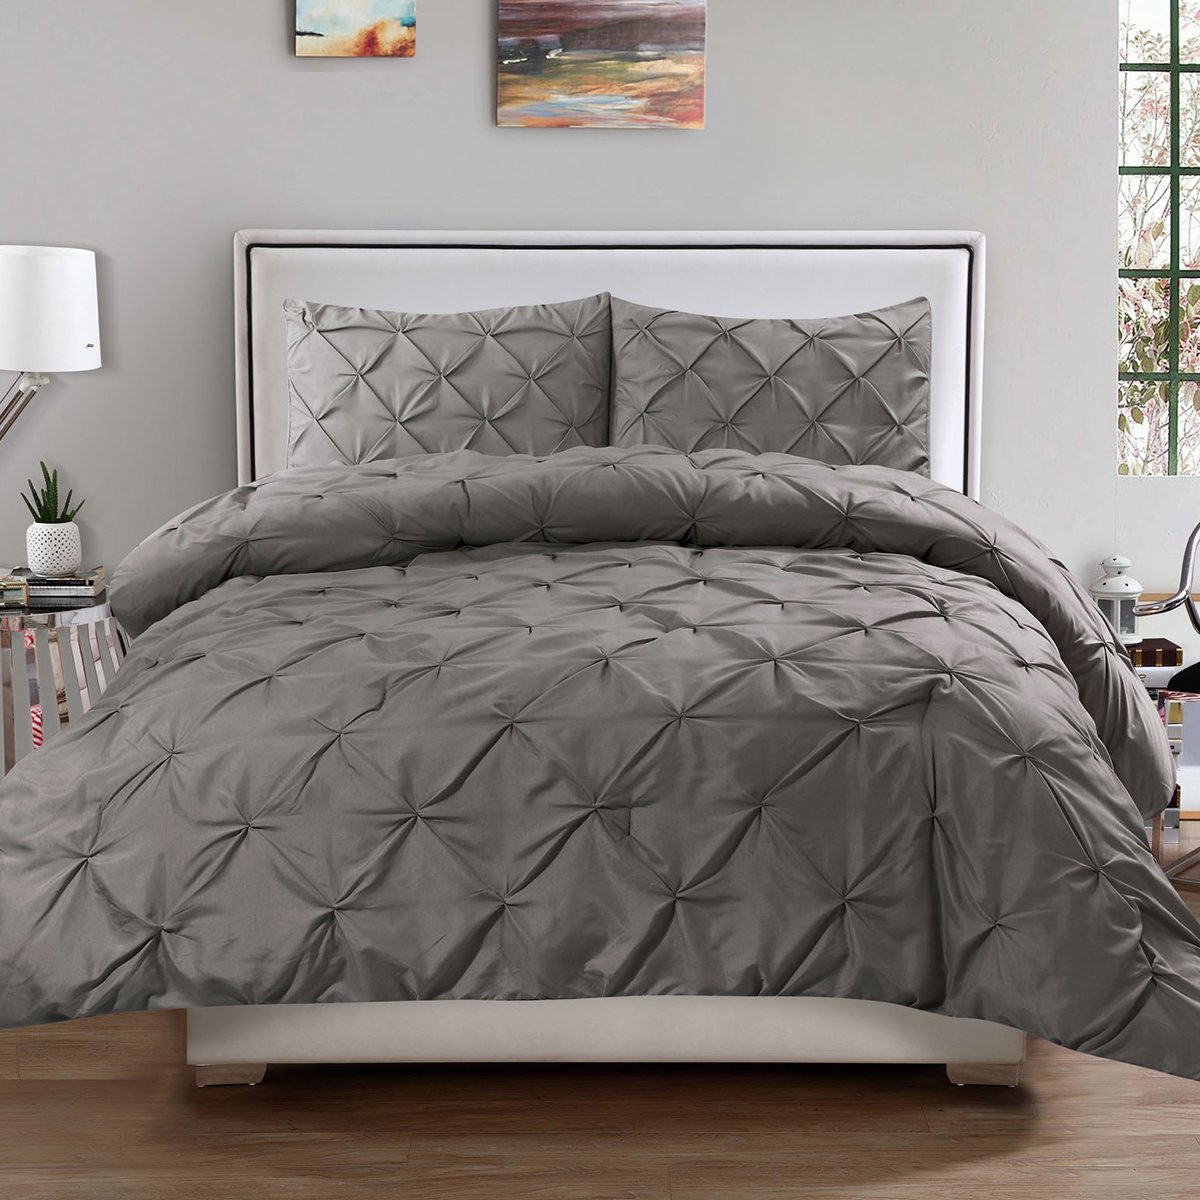 Sweet Home Collection 3 Piece Luxury Pinch Pleat Pintuck Fashion Duvet Set, King, Gray